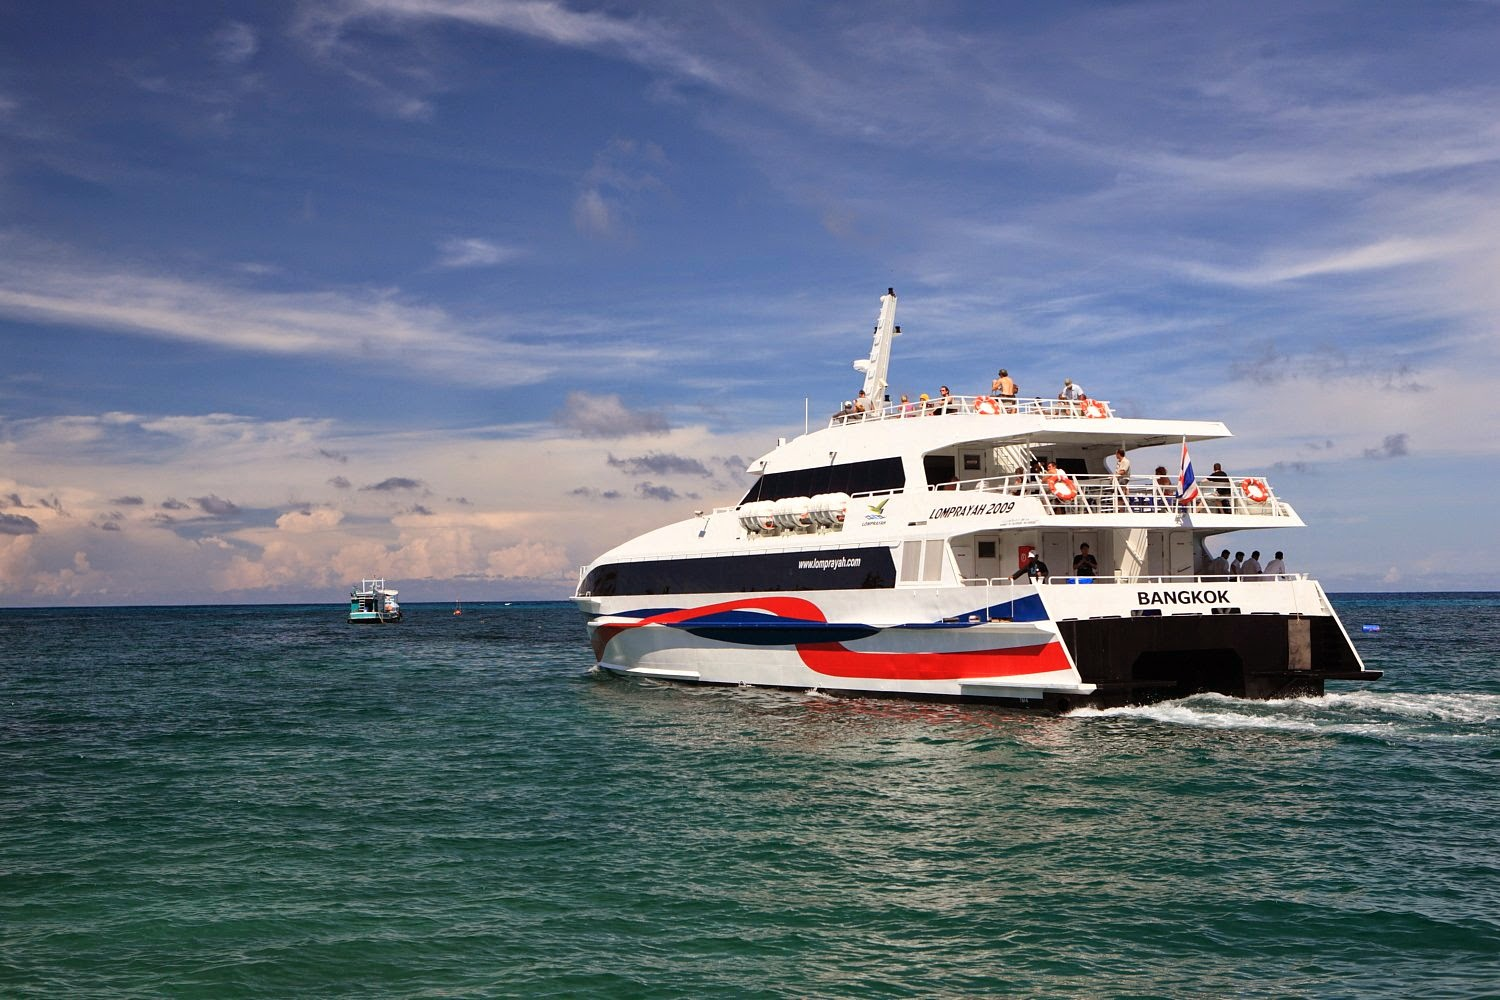 From Koh Samui to Surat Thani Train Station by Lomprayah High Speed Catamaran and Shared Minivan